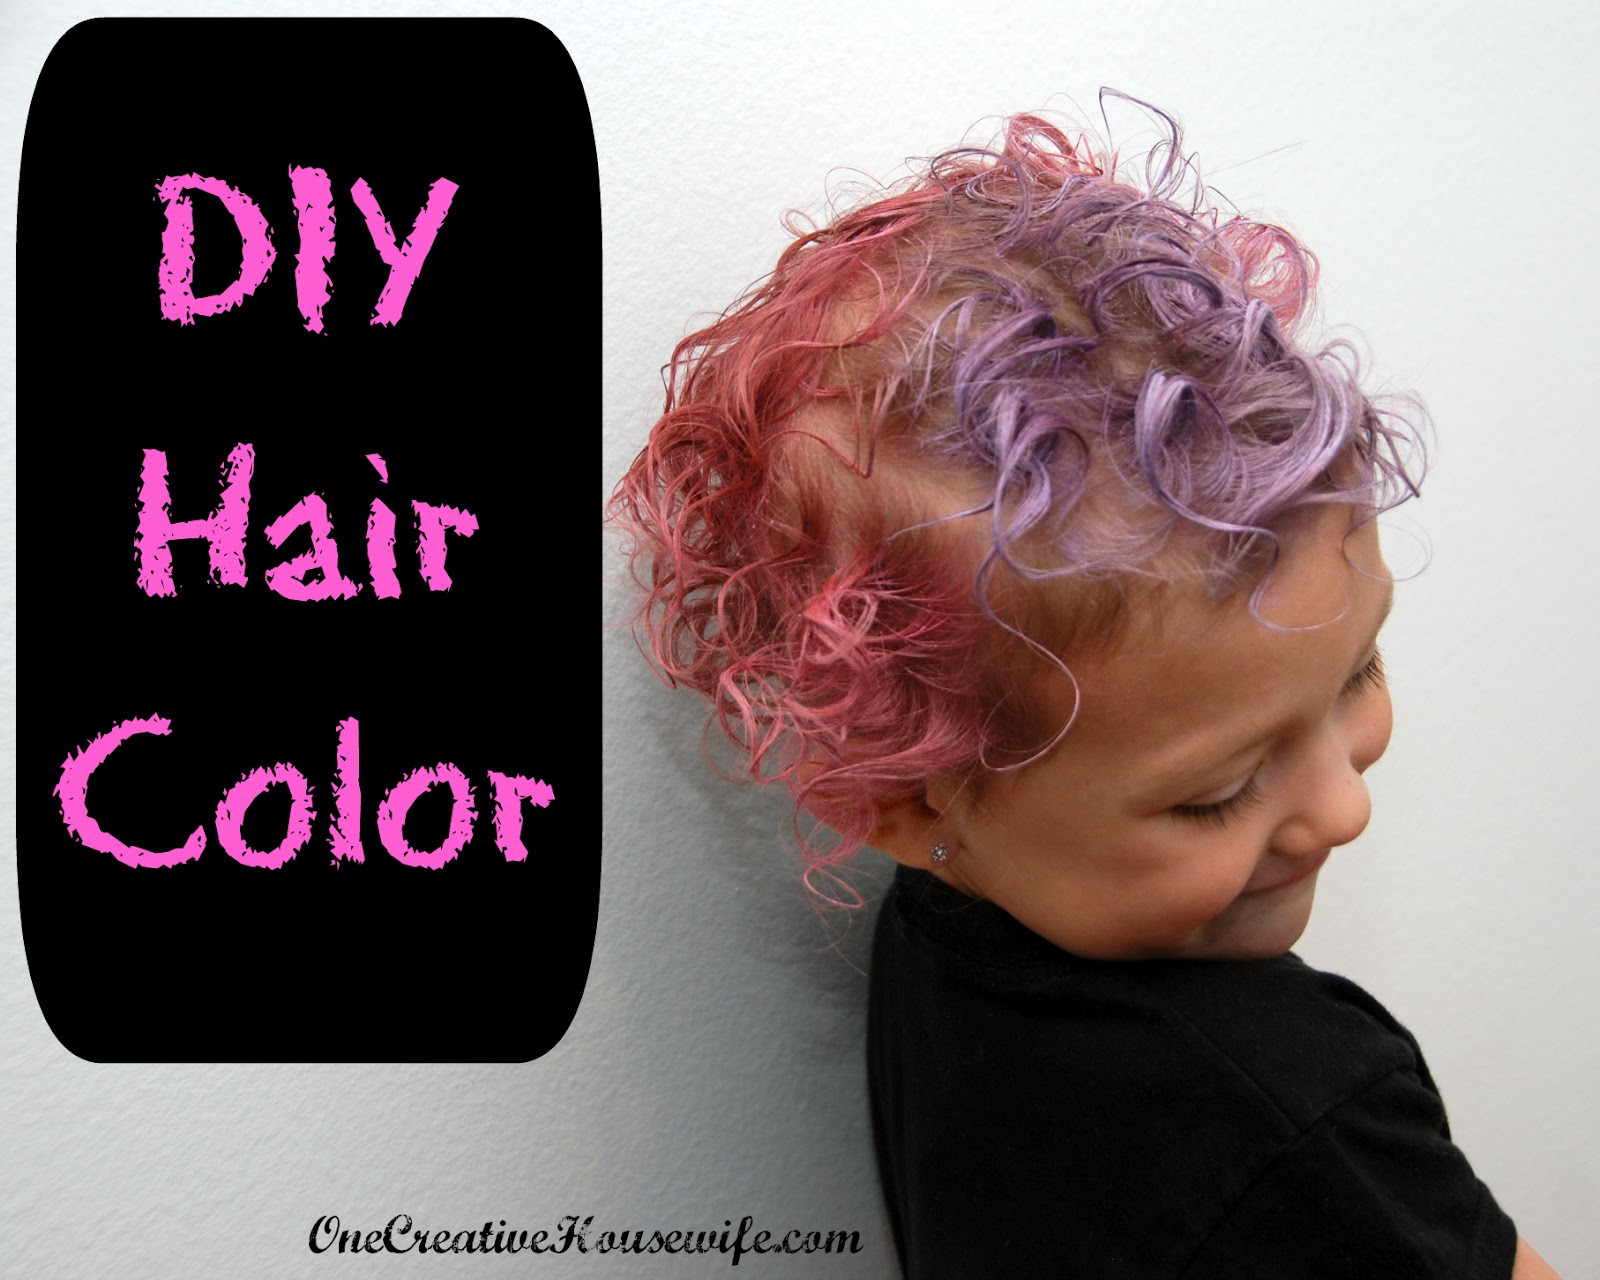 DIY Dyeing Hair  e Creative Housewife DIY Hair Color